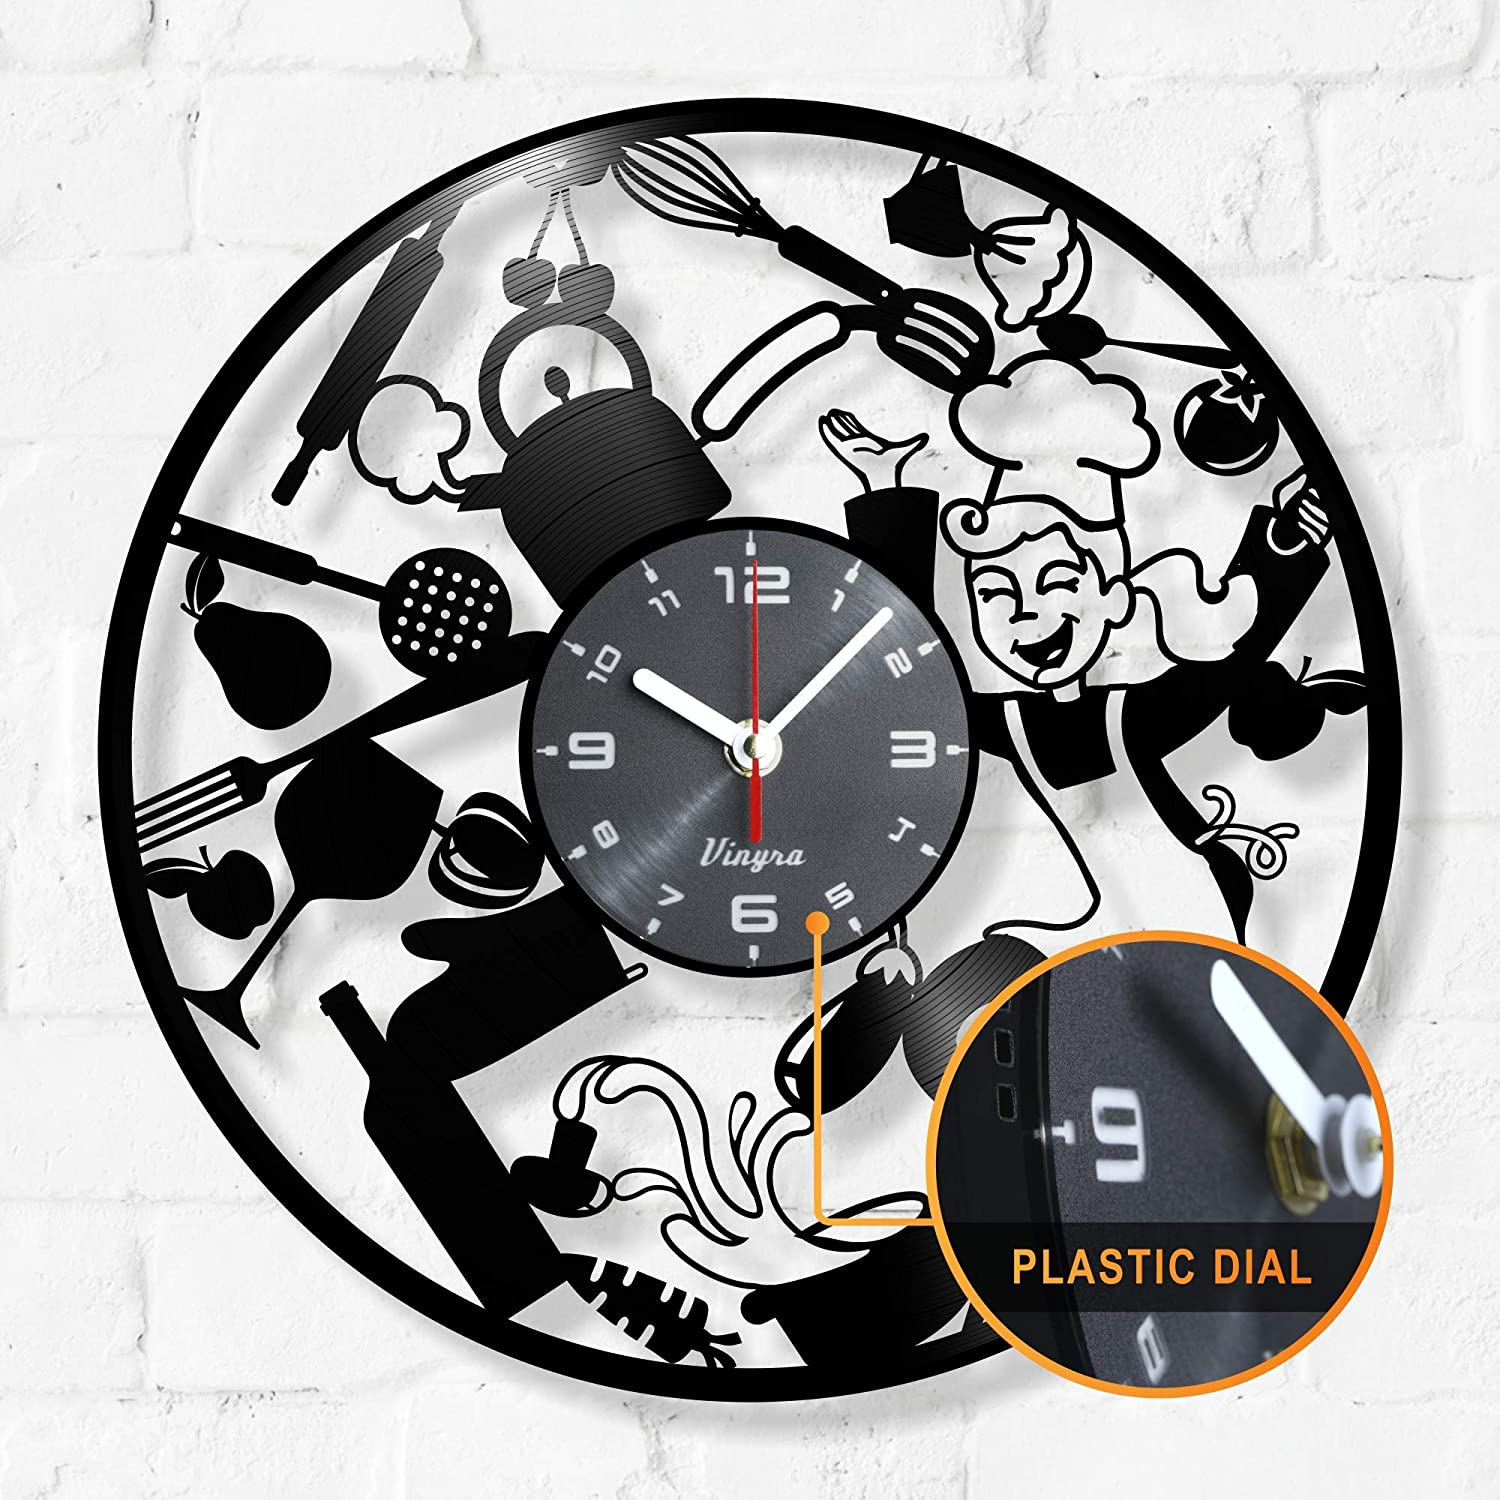 Amazon Com Kitchen Clock Vinyl Record Wall Cook Clock Utensil Forks Spoons Spatulas Wall Decor Decal Gifts Kitchen Queen Cook Wall Clock Ideas Kitchen Wall Decor Kitchen Gift Idea Kitchen